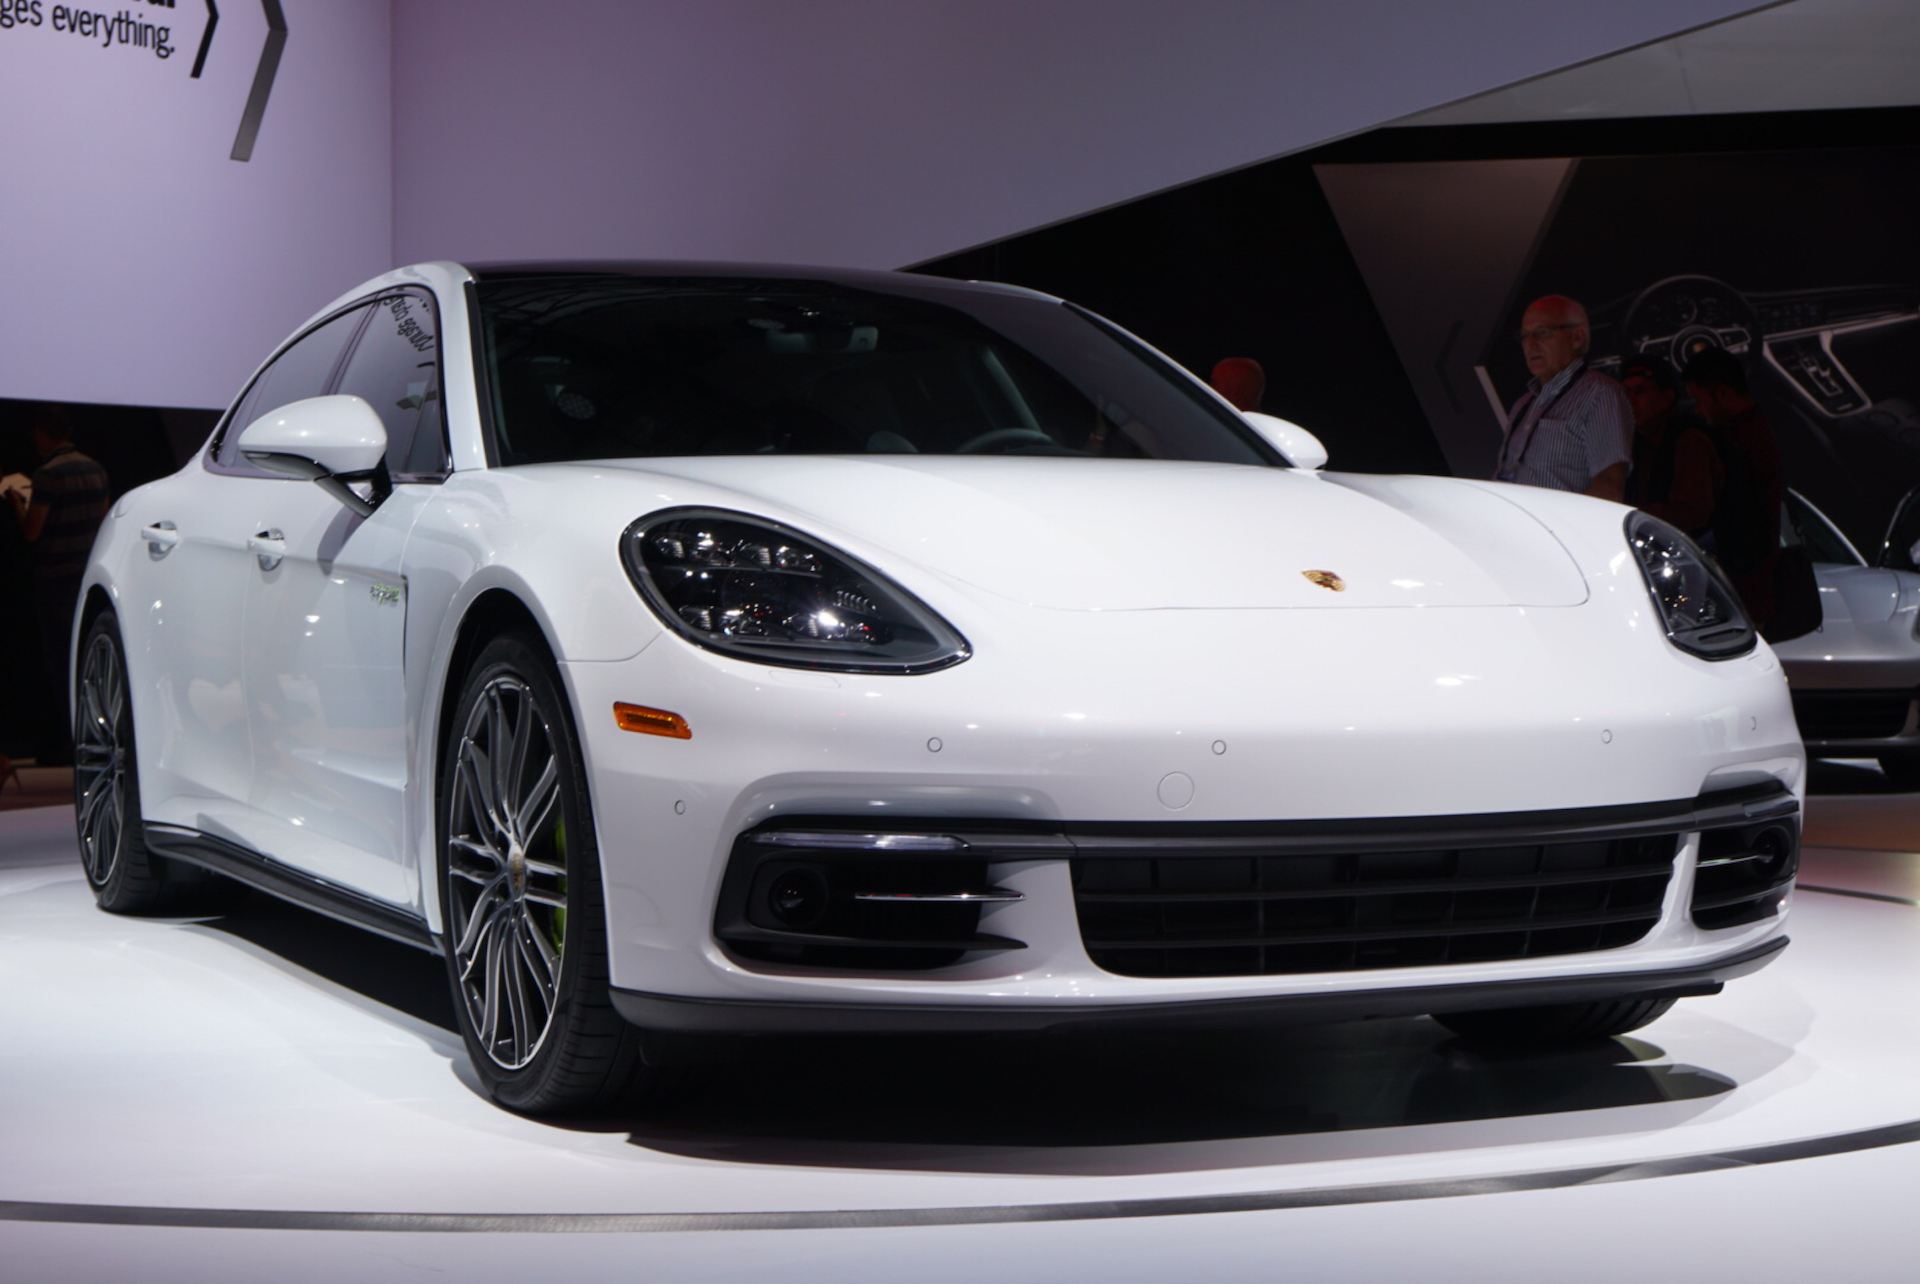 Porsche Panamera 4S >> Porsche Panamera base, Executive models debut at LA auto show